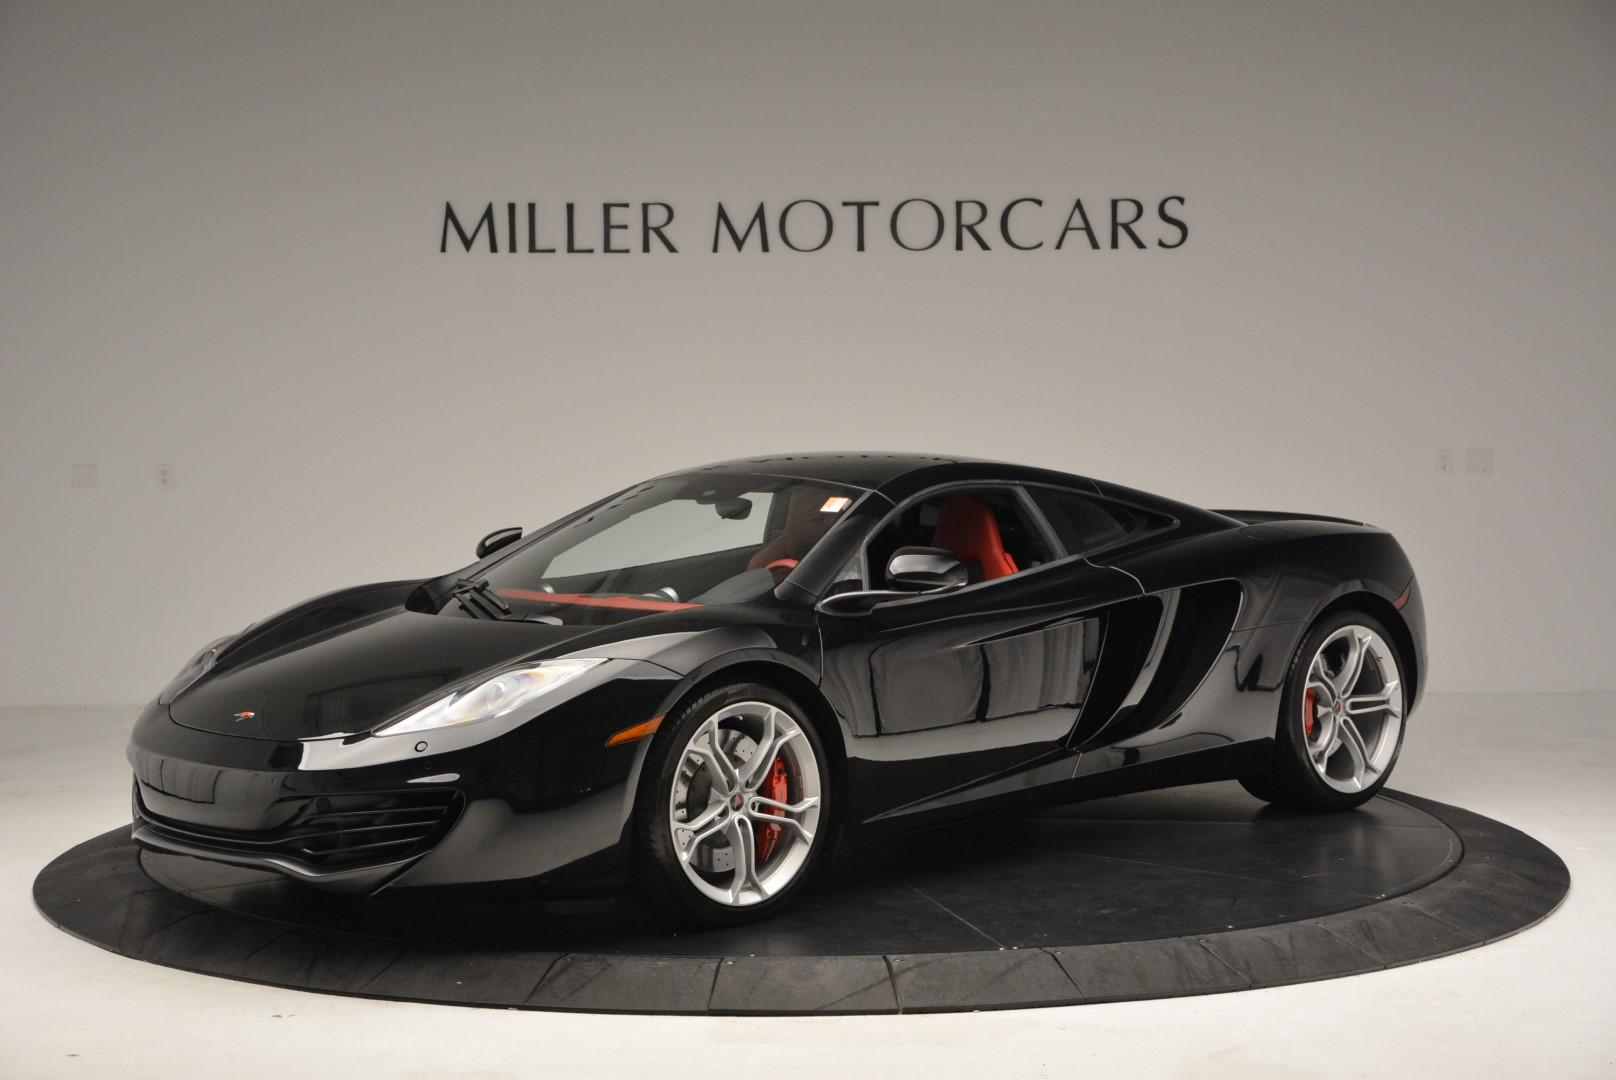 Used 2012 McLaren MP4-12c Coupe For Sale In Greenwich, CT. Alfa Romeo of Greenwich, 3155 70_main